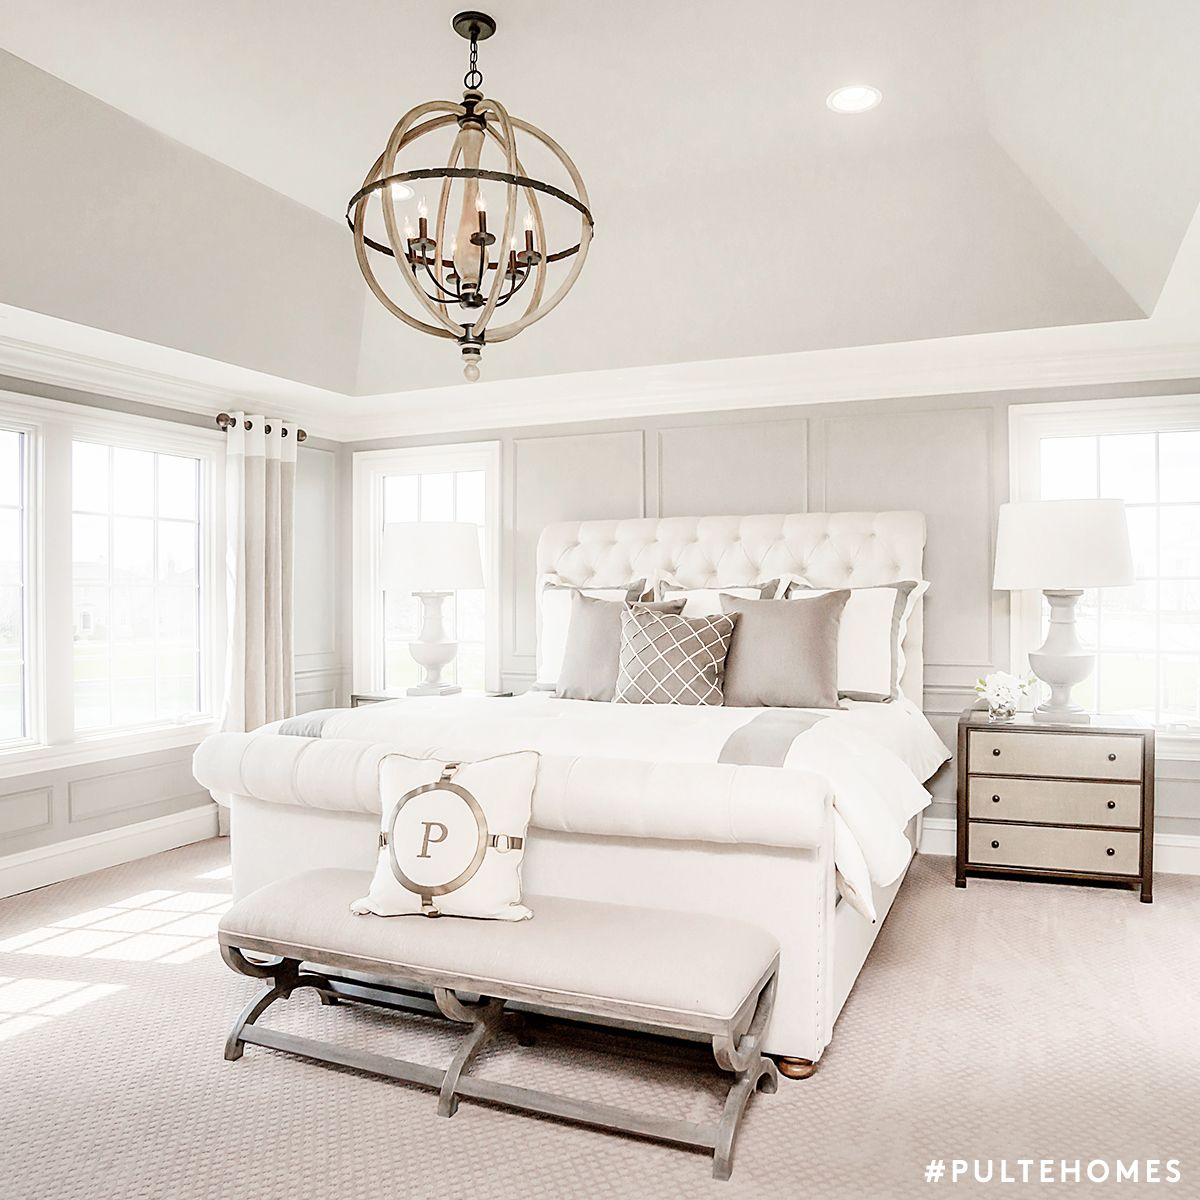 set a zen like scene with an all white bedroom that has touches of silver and gold pulte. Black Bedroom Furniture Sets. Home Design Ideas